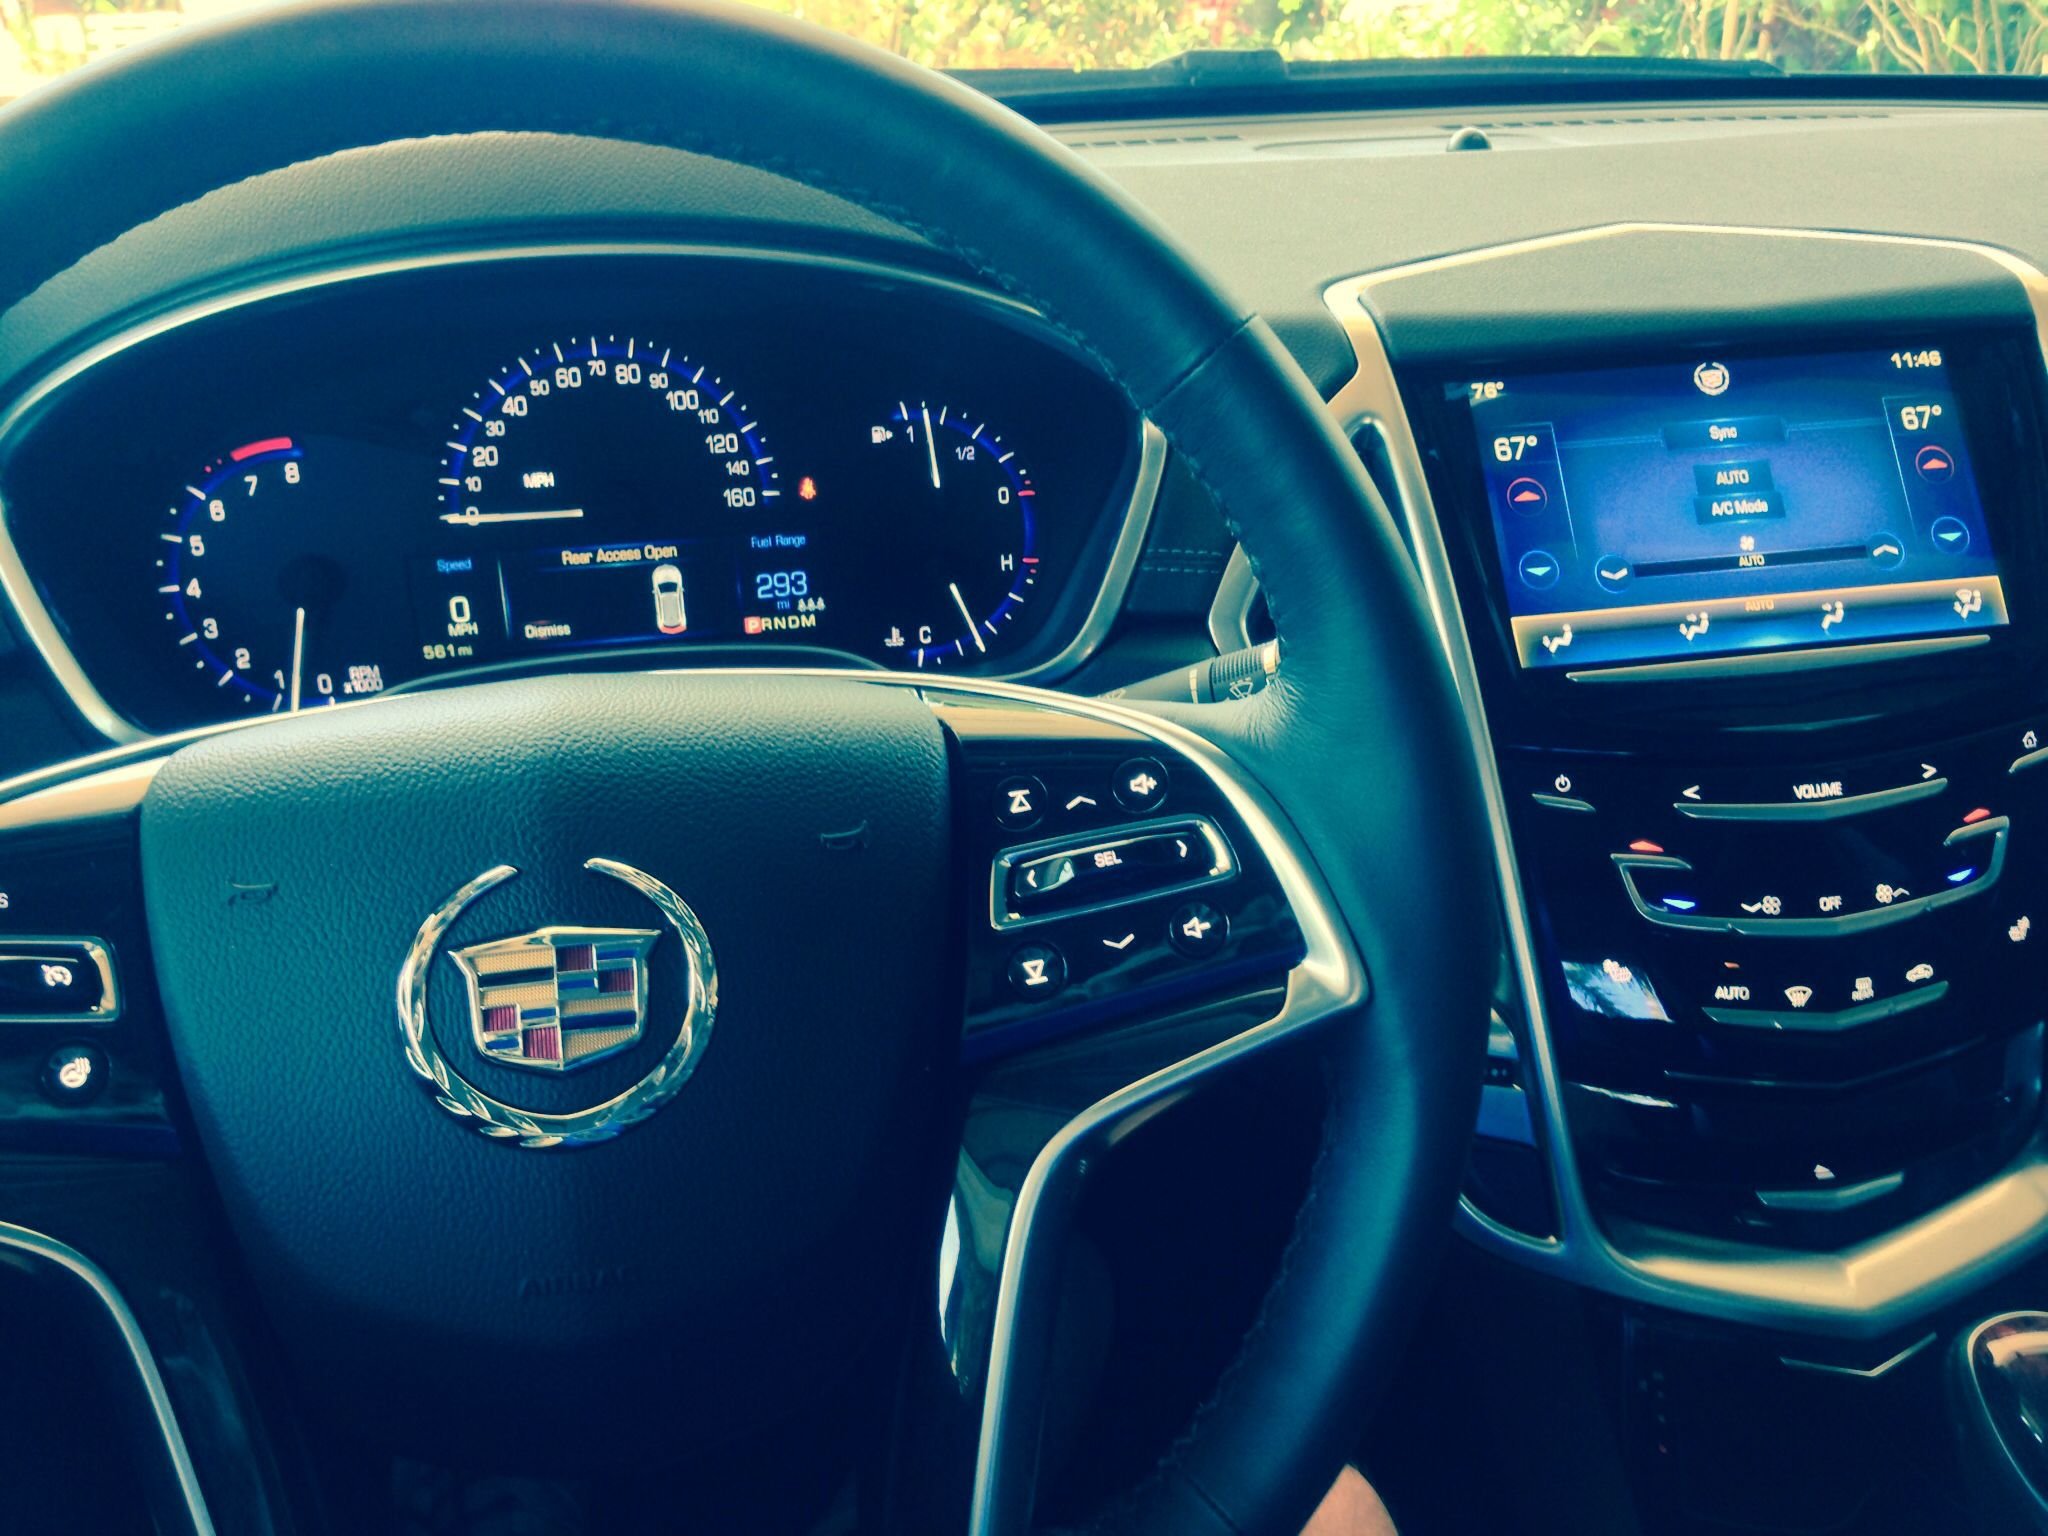 Impressed with this Caddy SRX and the Cadillac Cue technology #Cadillac #LincolnBeater